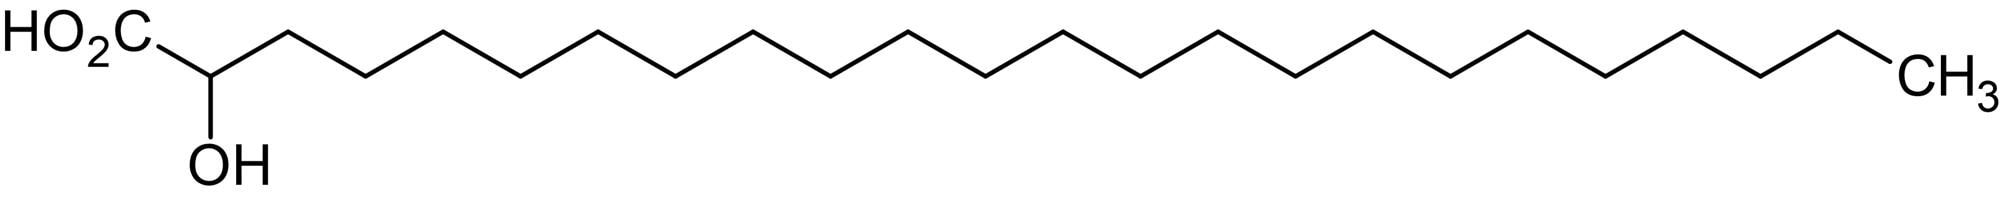 Chemical Structure - 2-Hydroxytetracosanoic acid, 2-Hydroxy C24:0 fatty acid (ab144018)